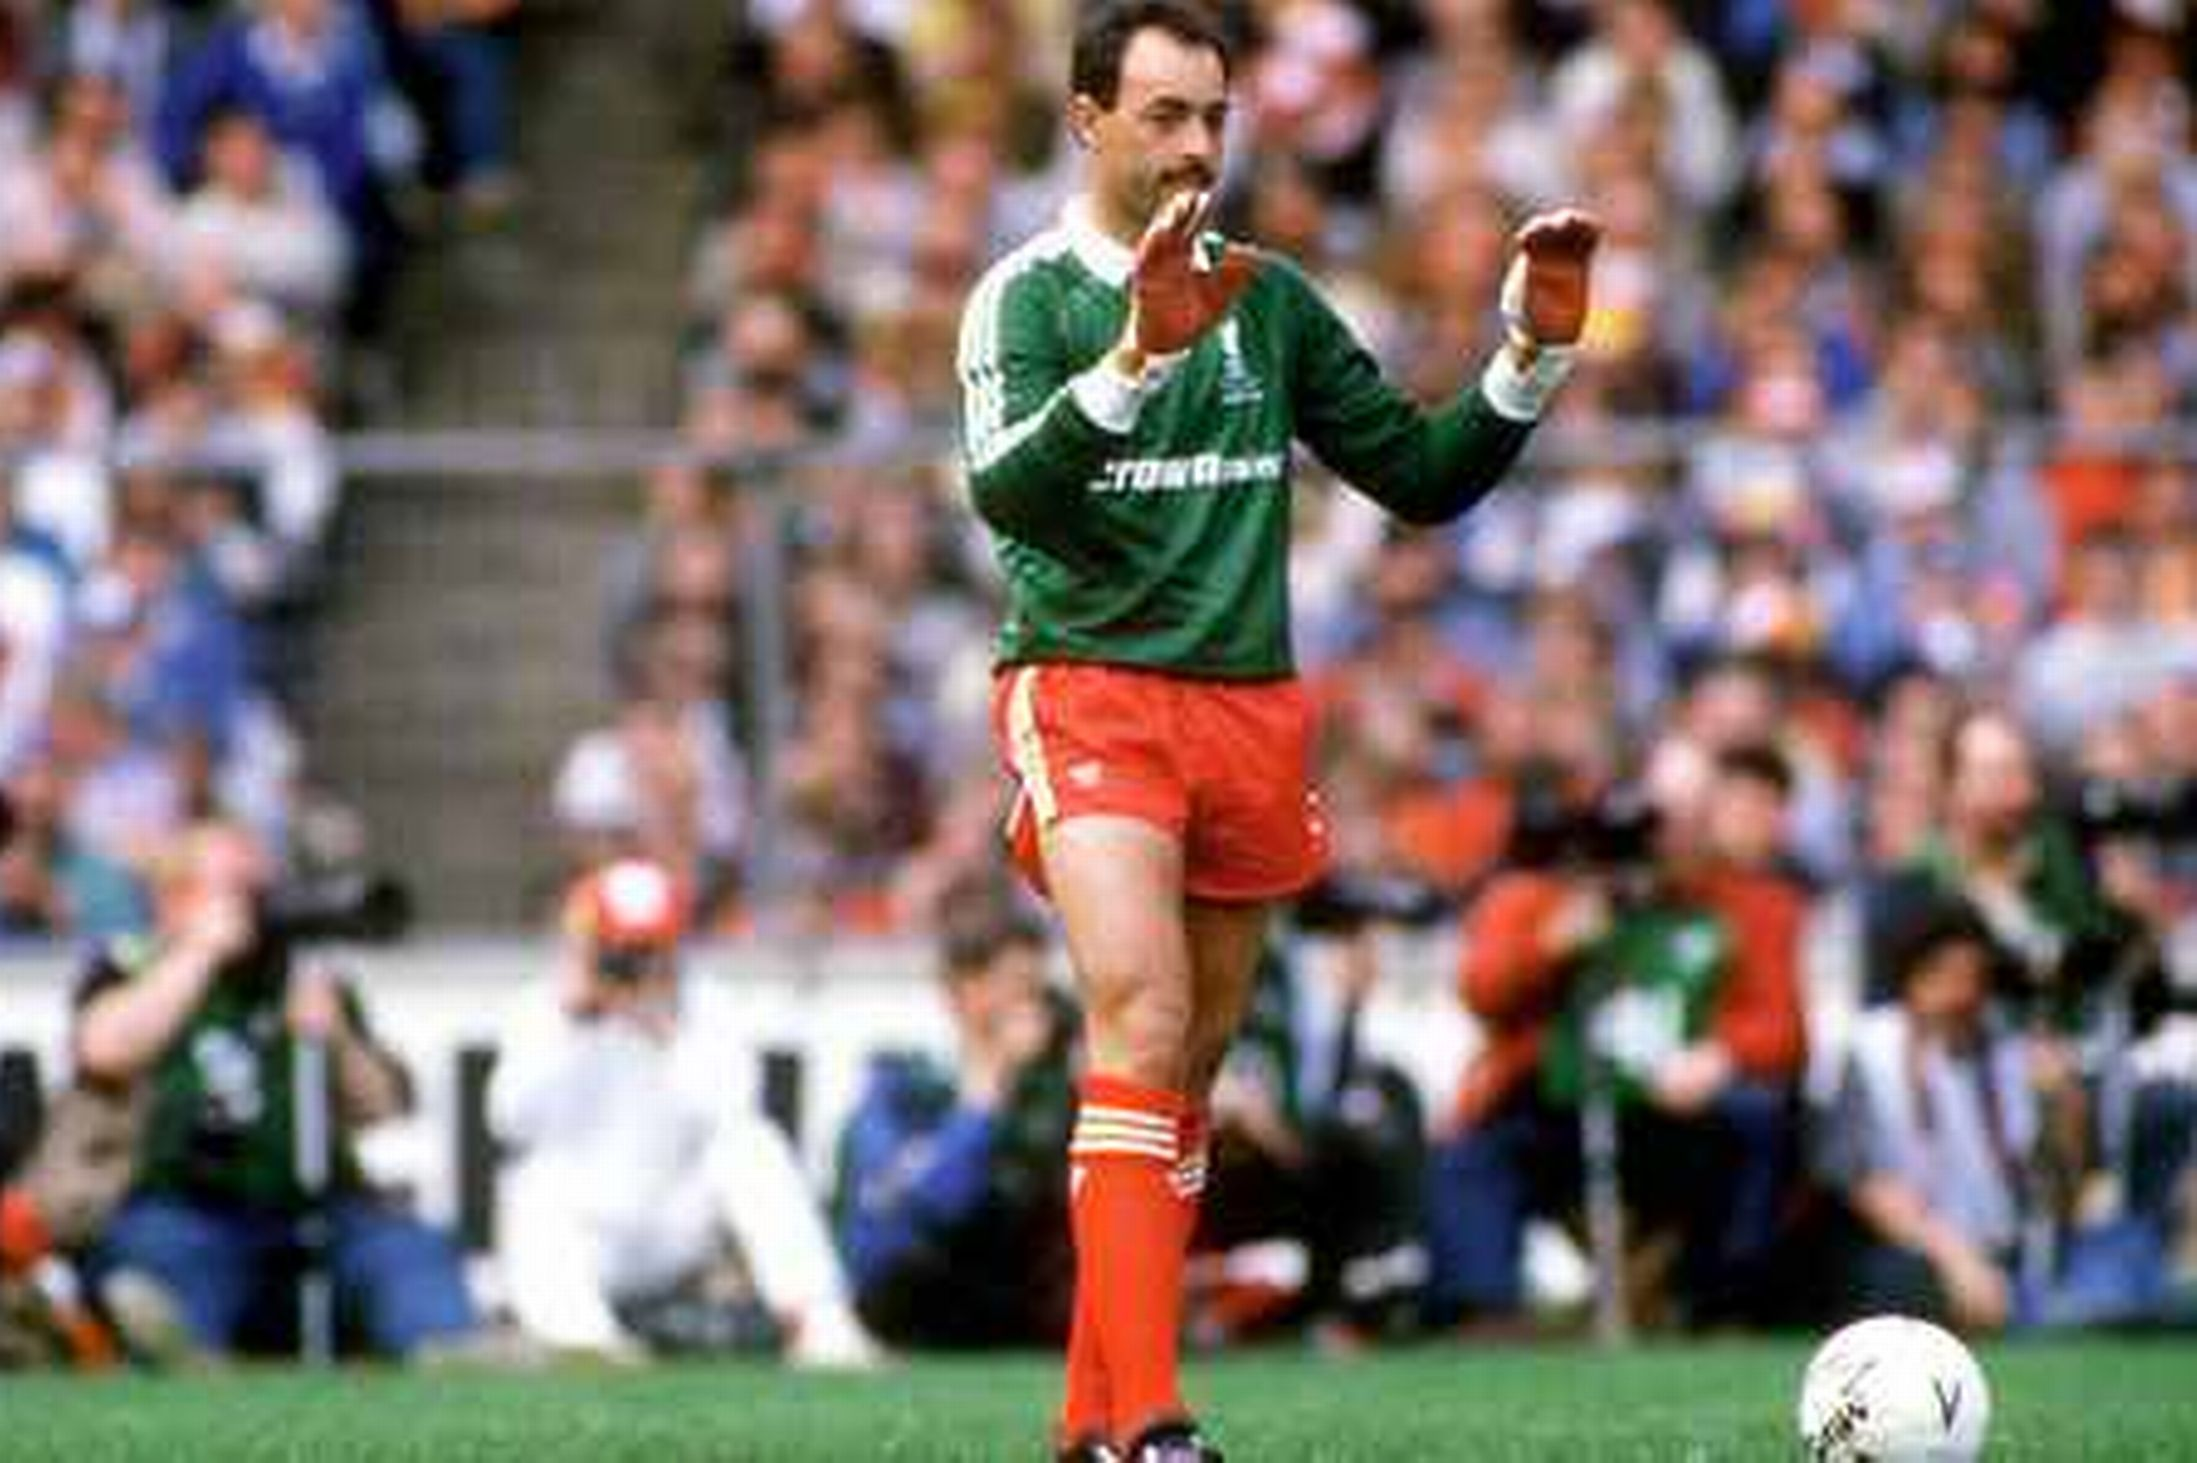 Bruce Grobbelaar shares how football and Liverpool saved his life